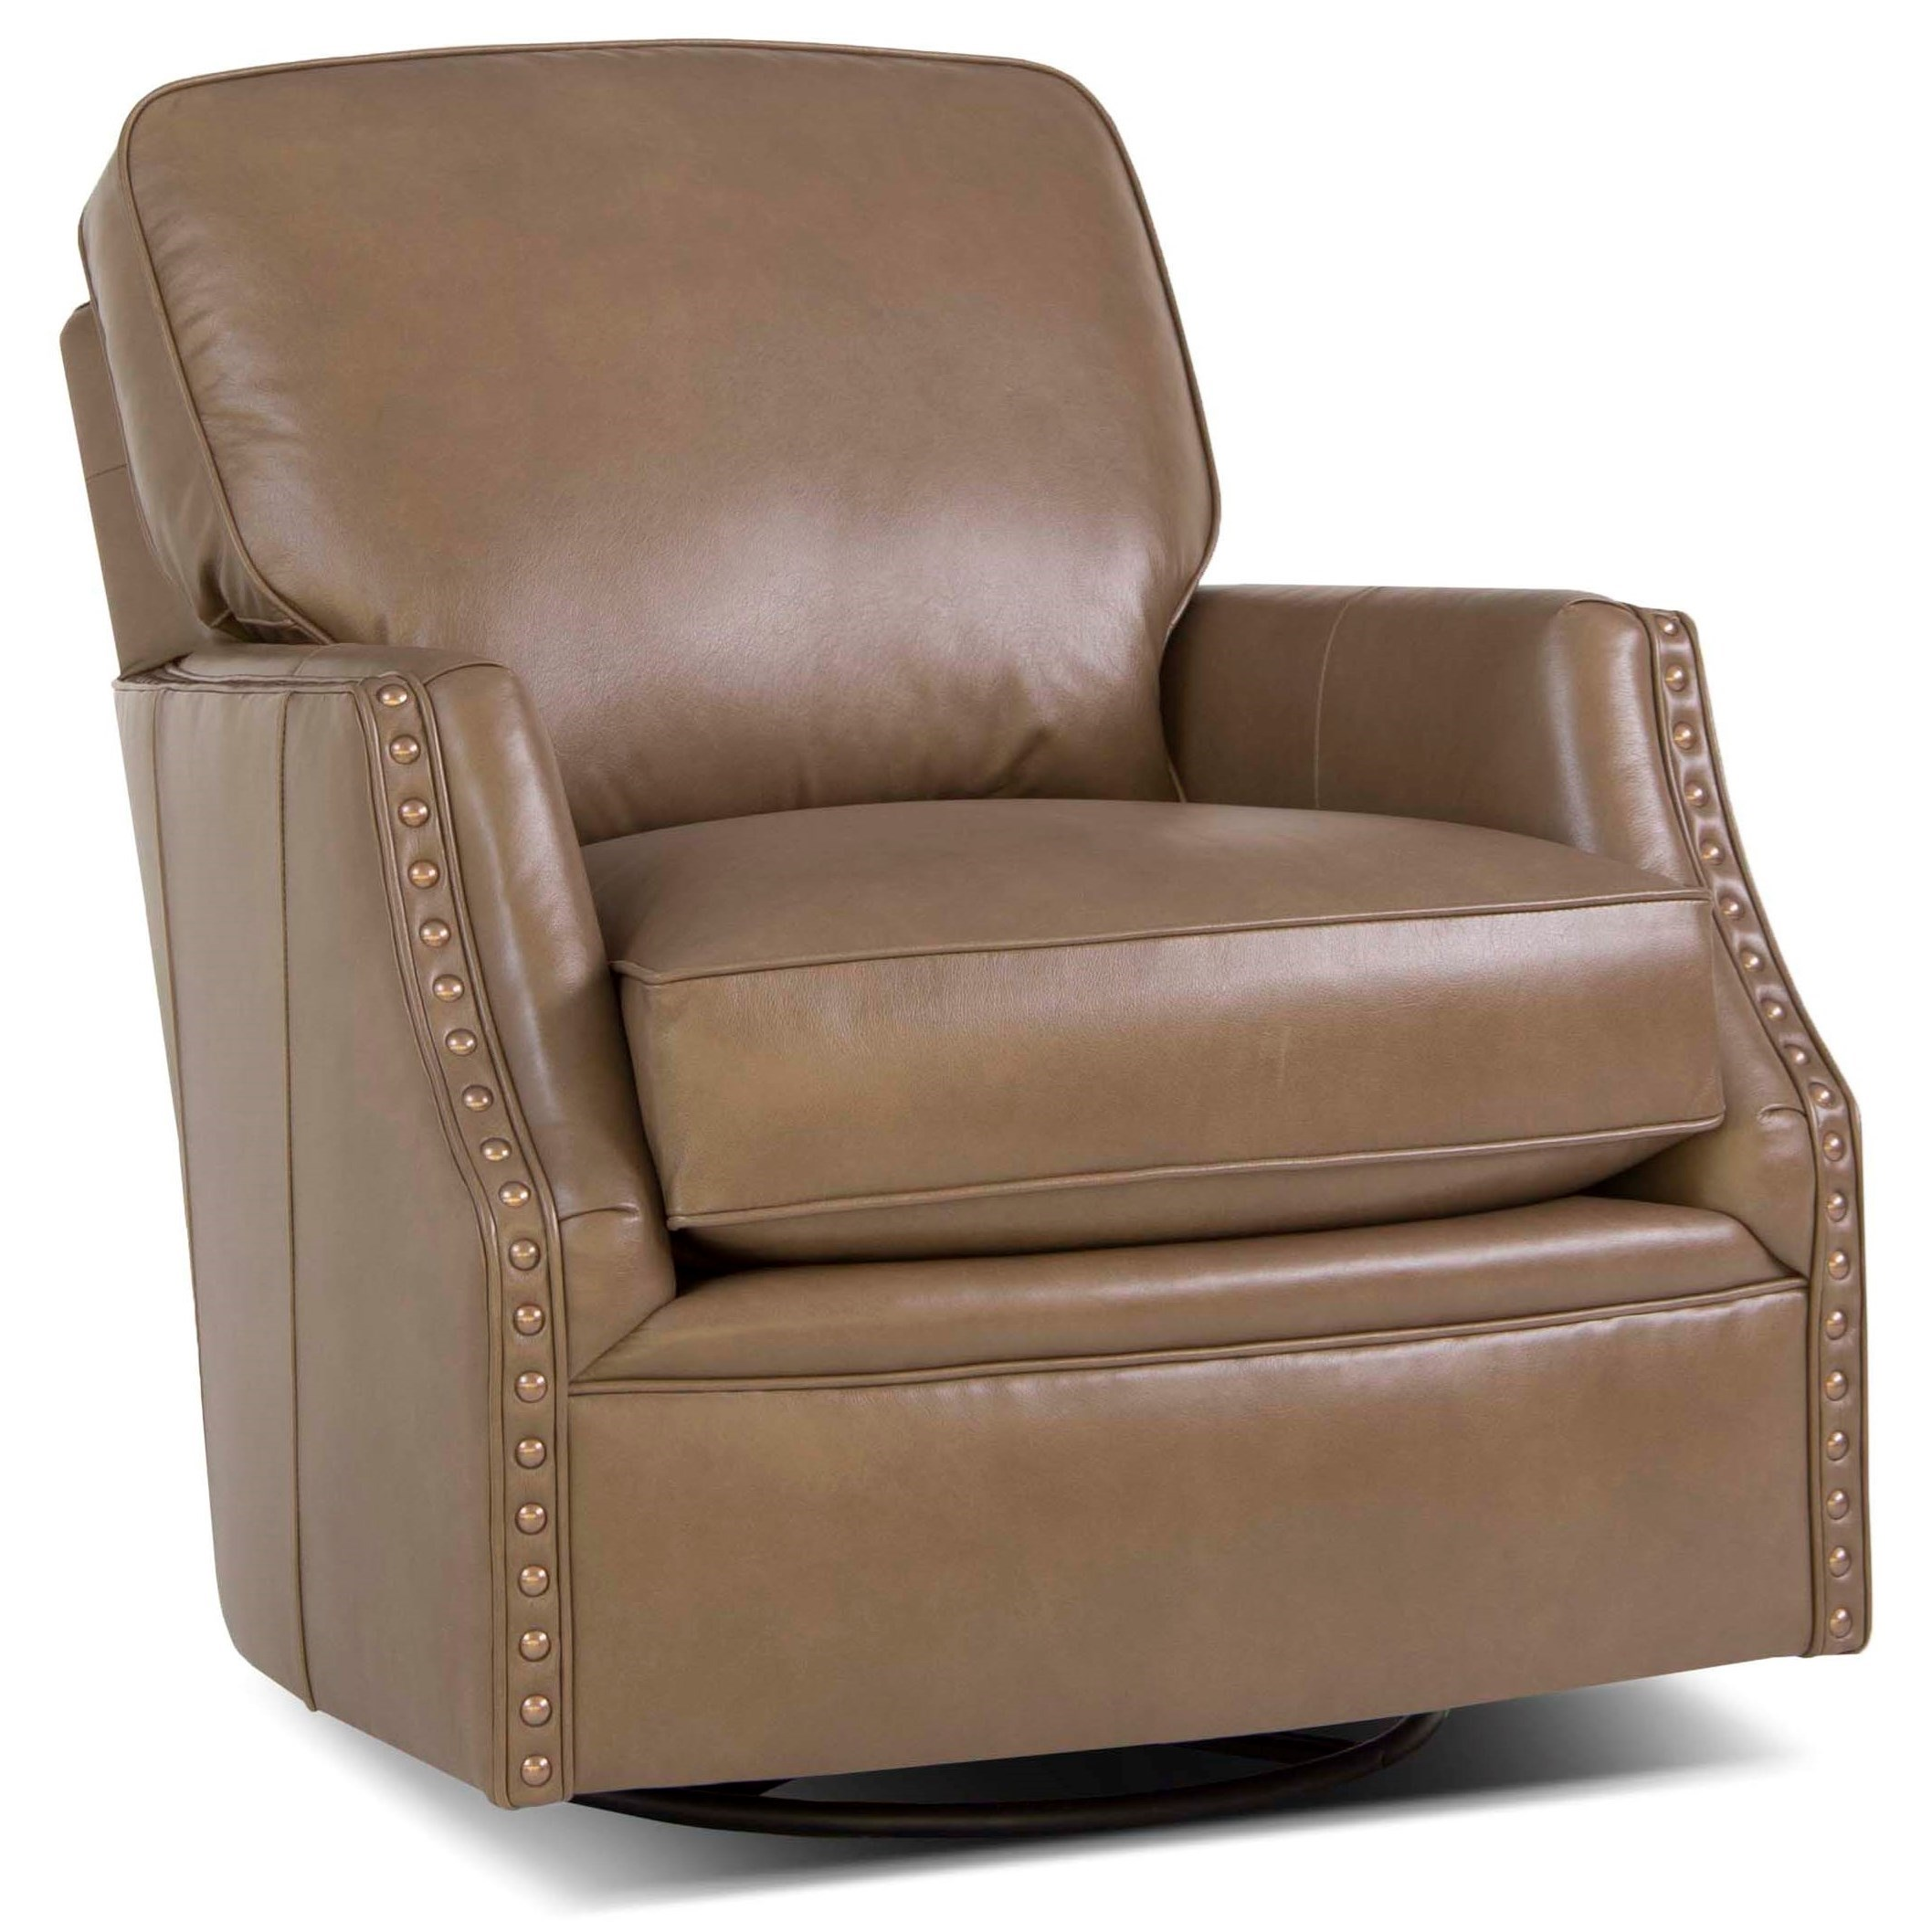 526 Swivel Glider Chair by Smith Brothers at Miller Home